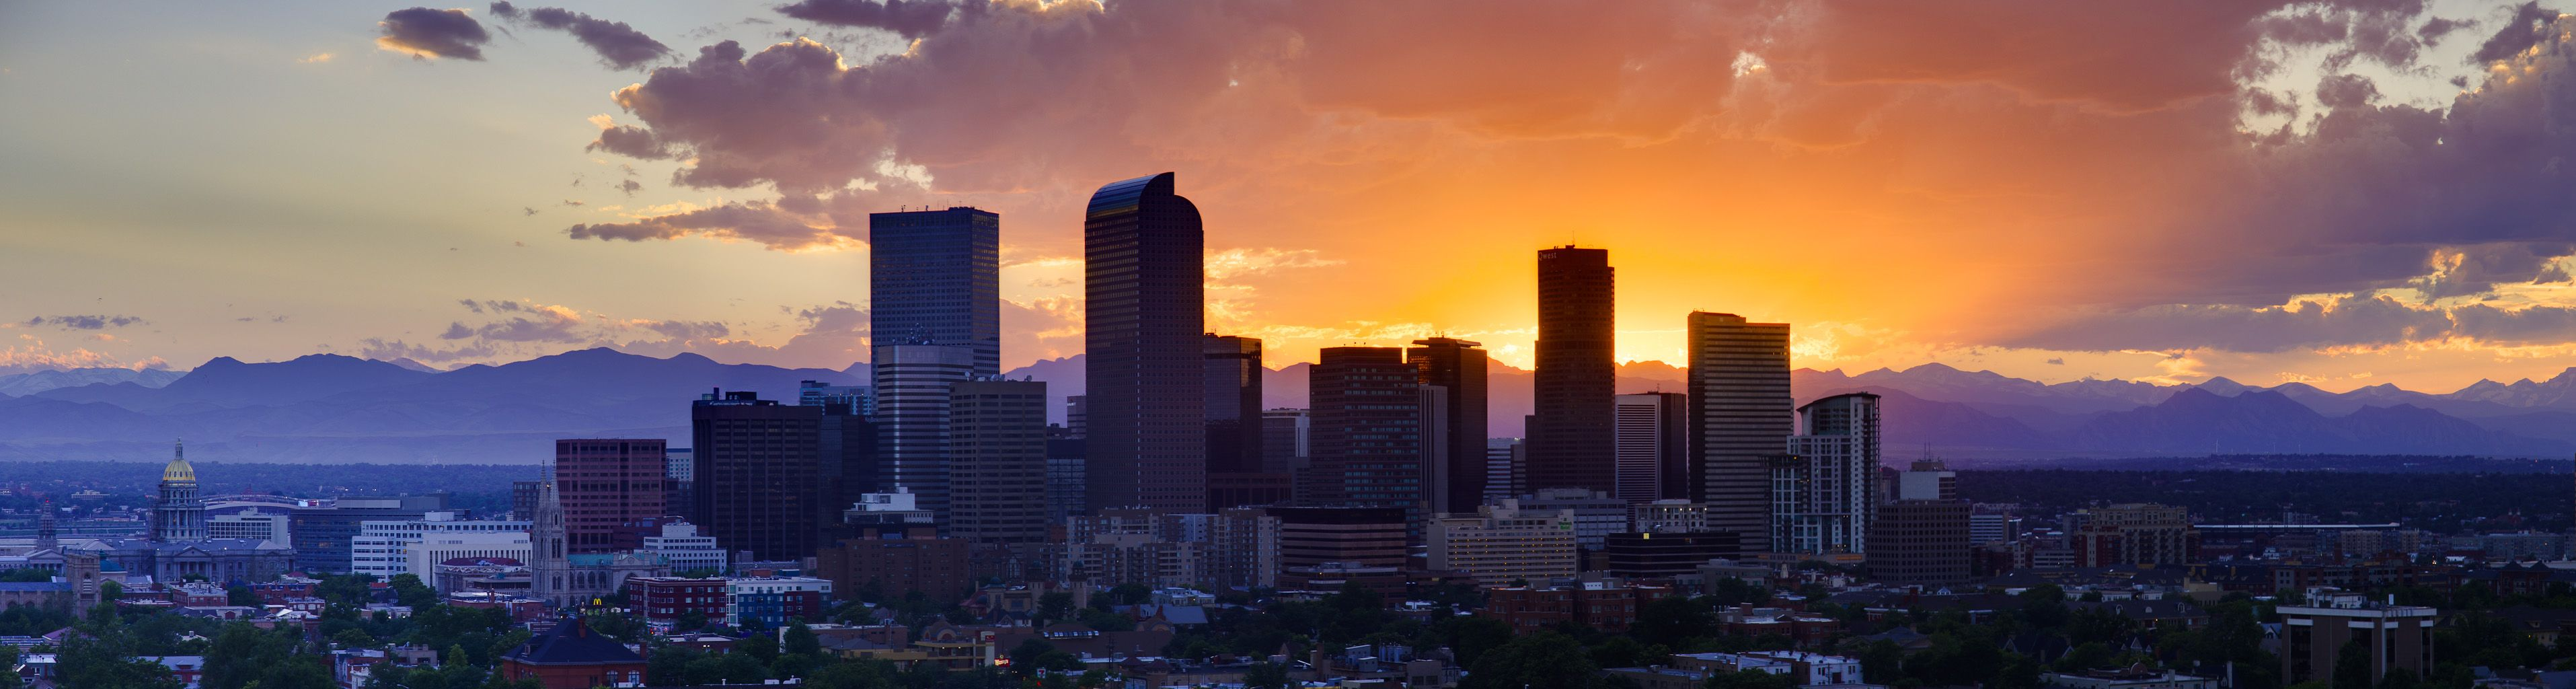 denver cityscape wallpaper denver skyline sunset